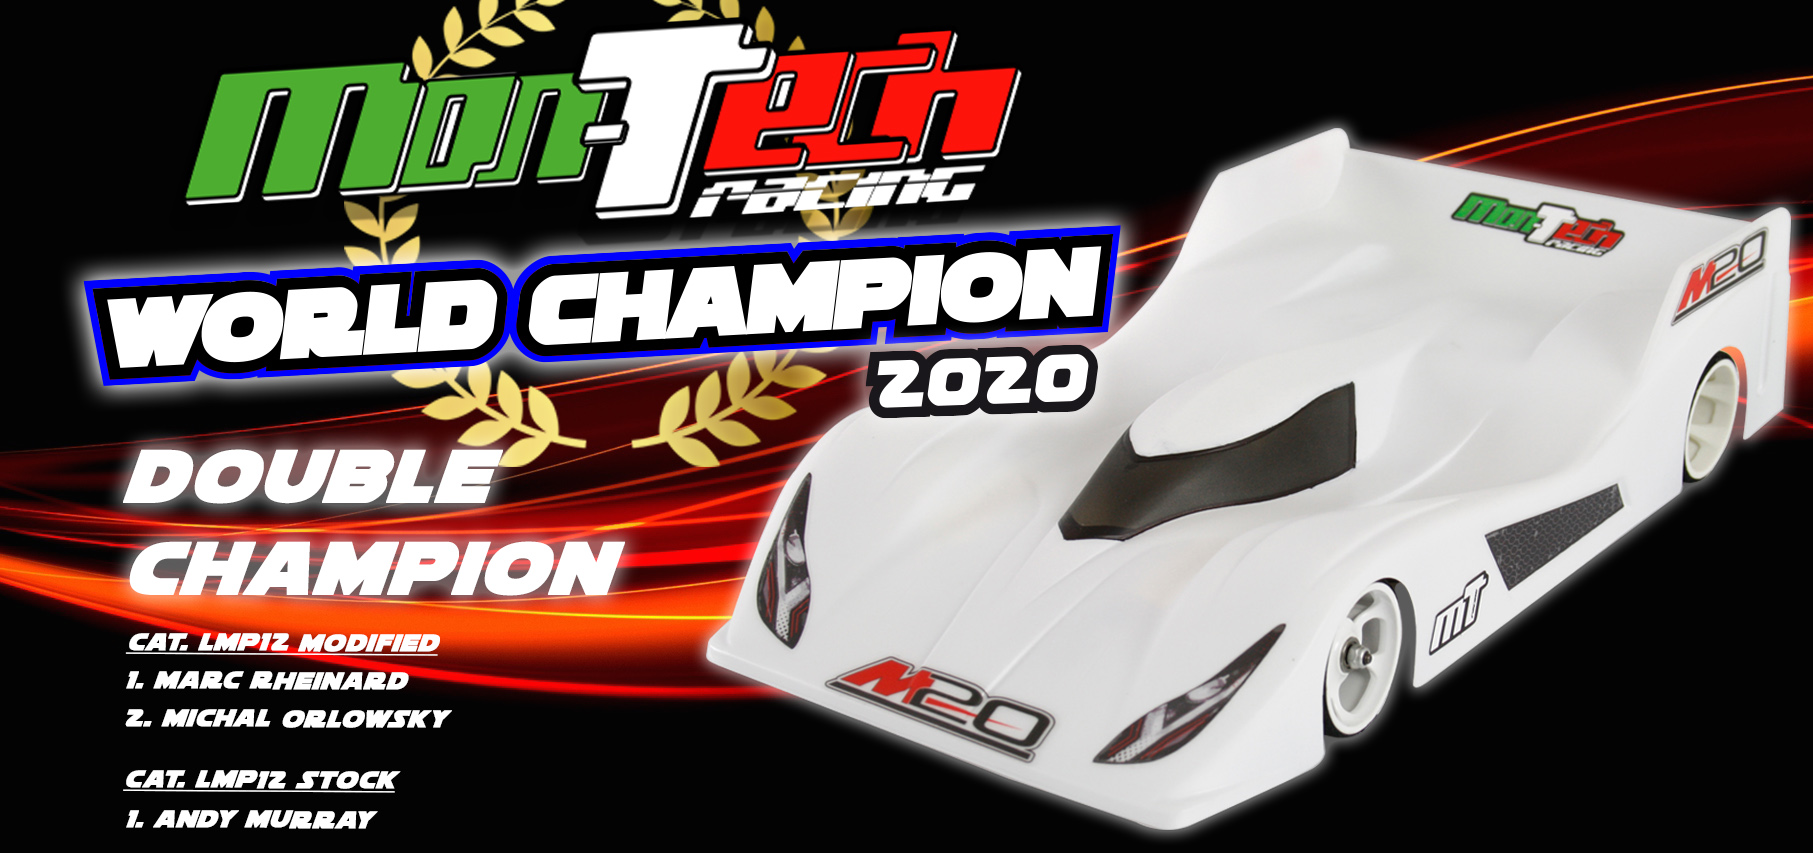 WORLD CHAMPION_2020__2